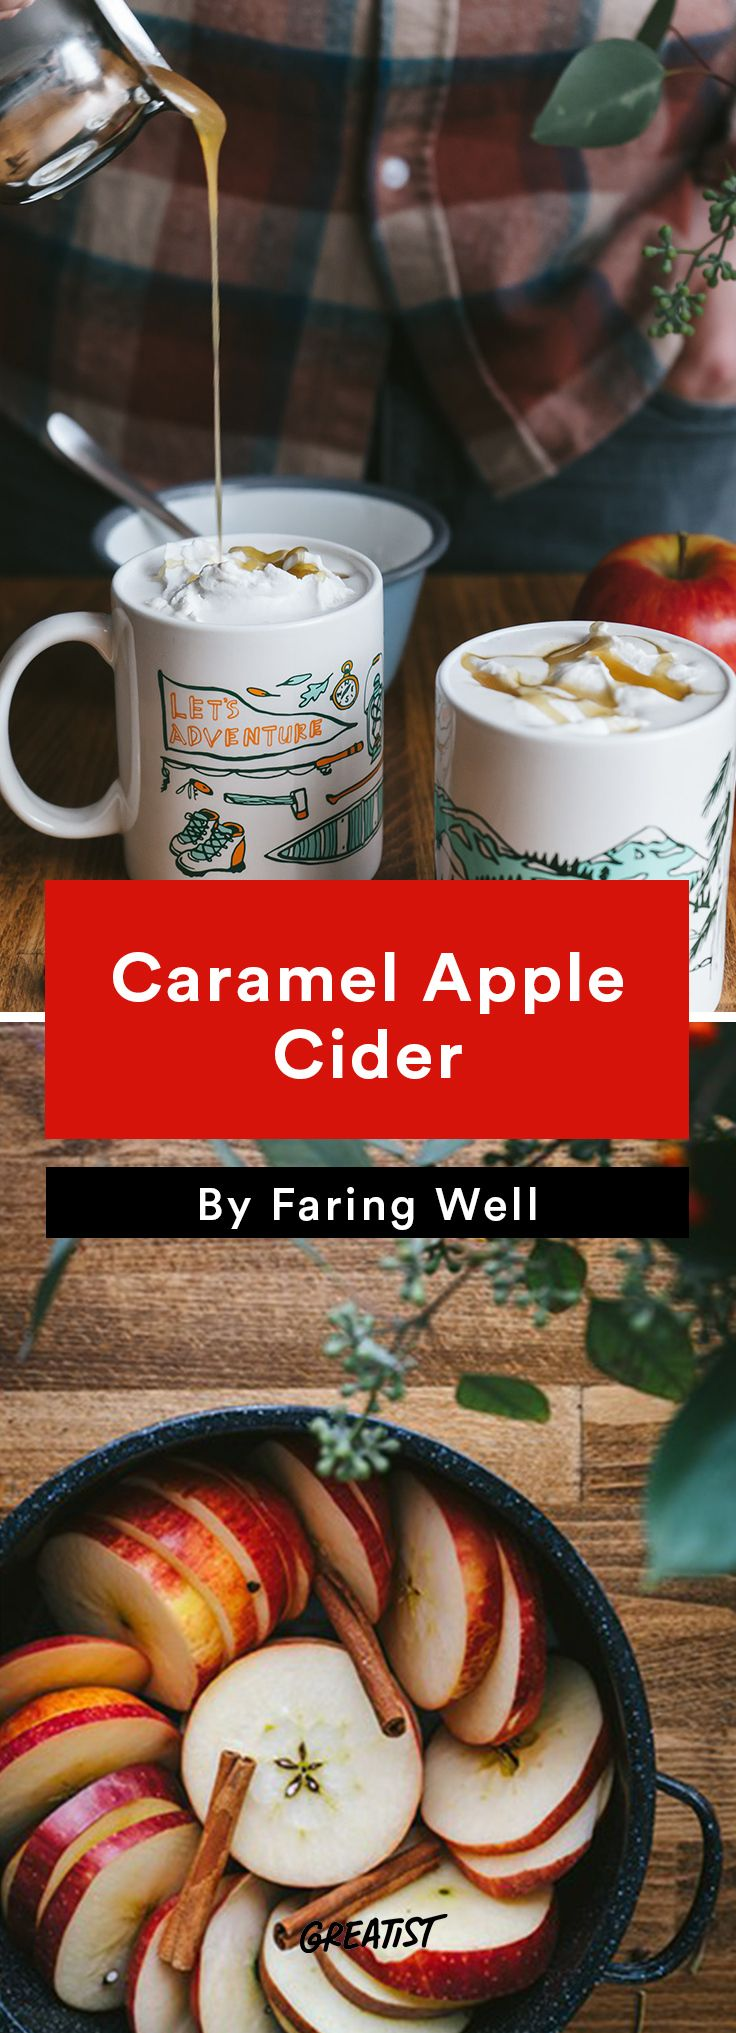 2. Caramel Apple Cider #fall #recipes http://greatist.com/eat/fall-recipes-to-take-on-a-picnic